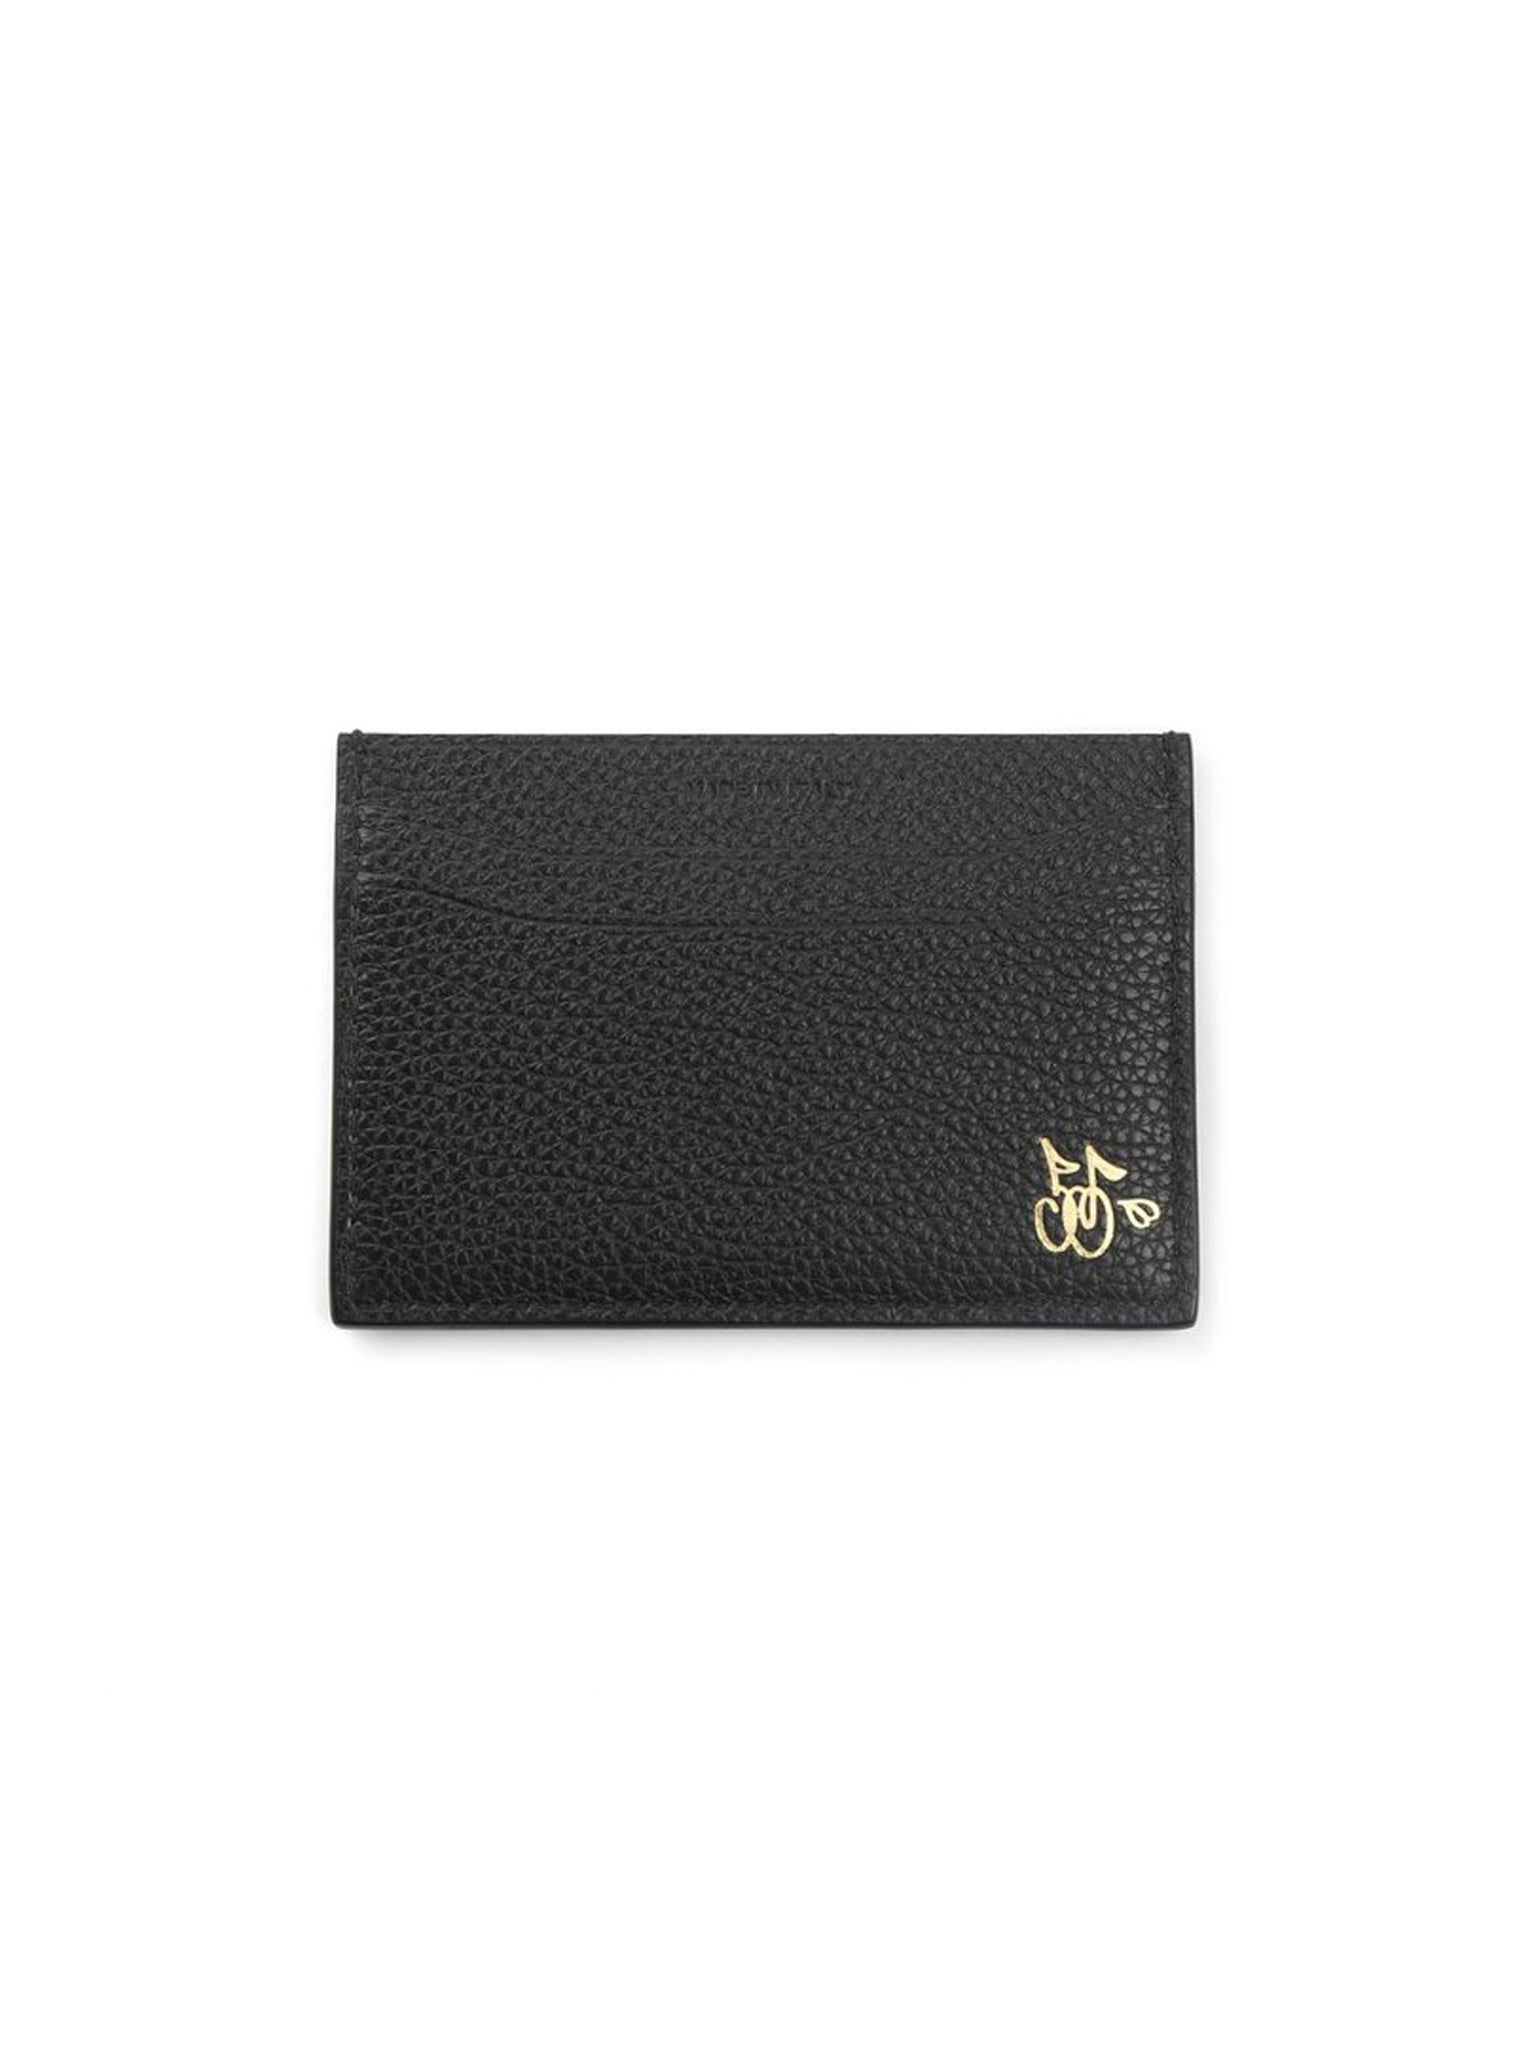 leather-card-case-1